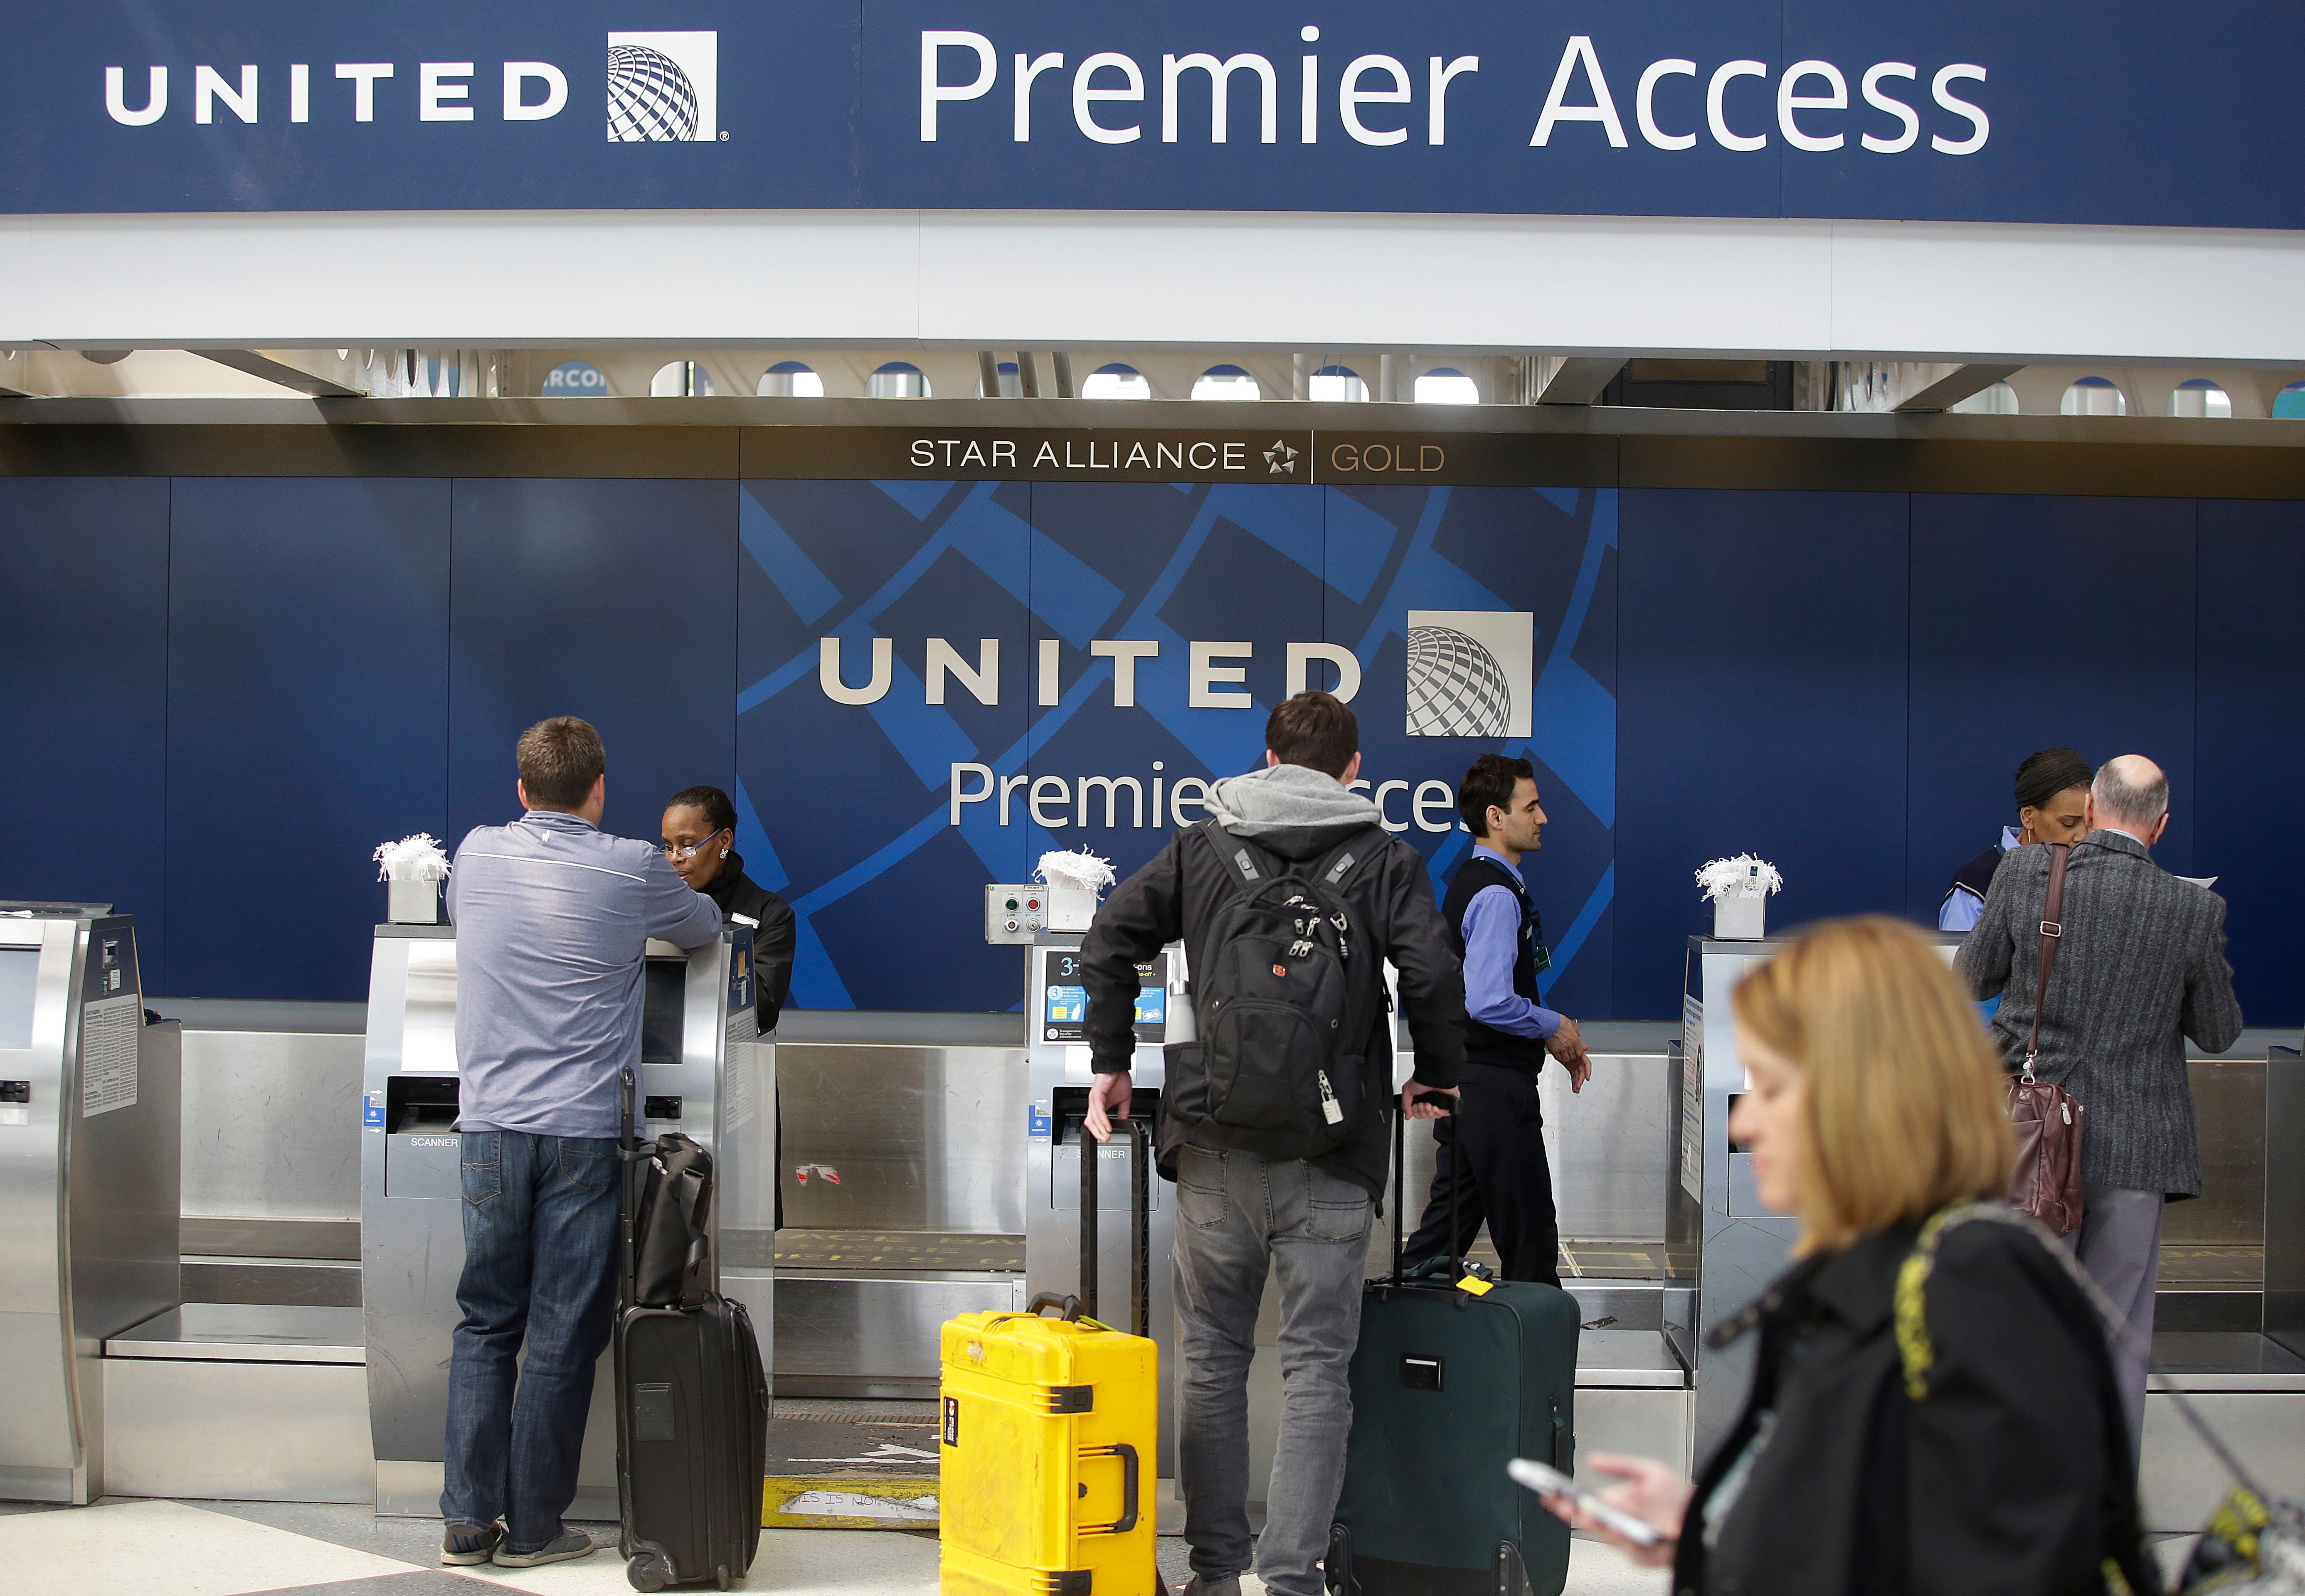 United Airlines Won't Be Punished For Dragging Passenger Off Flight